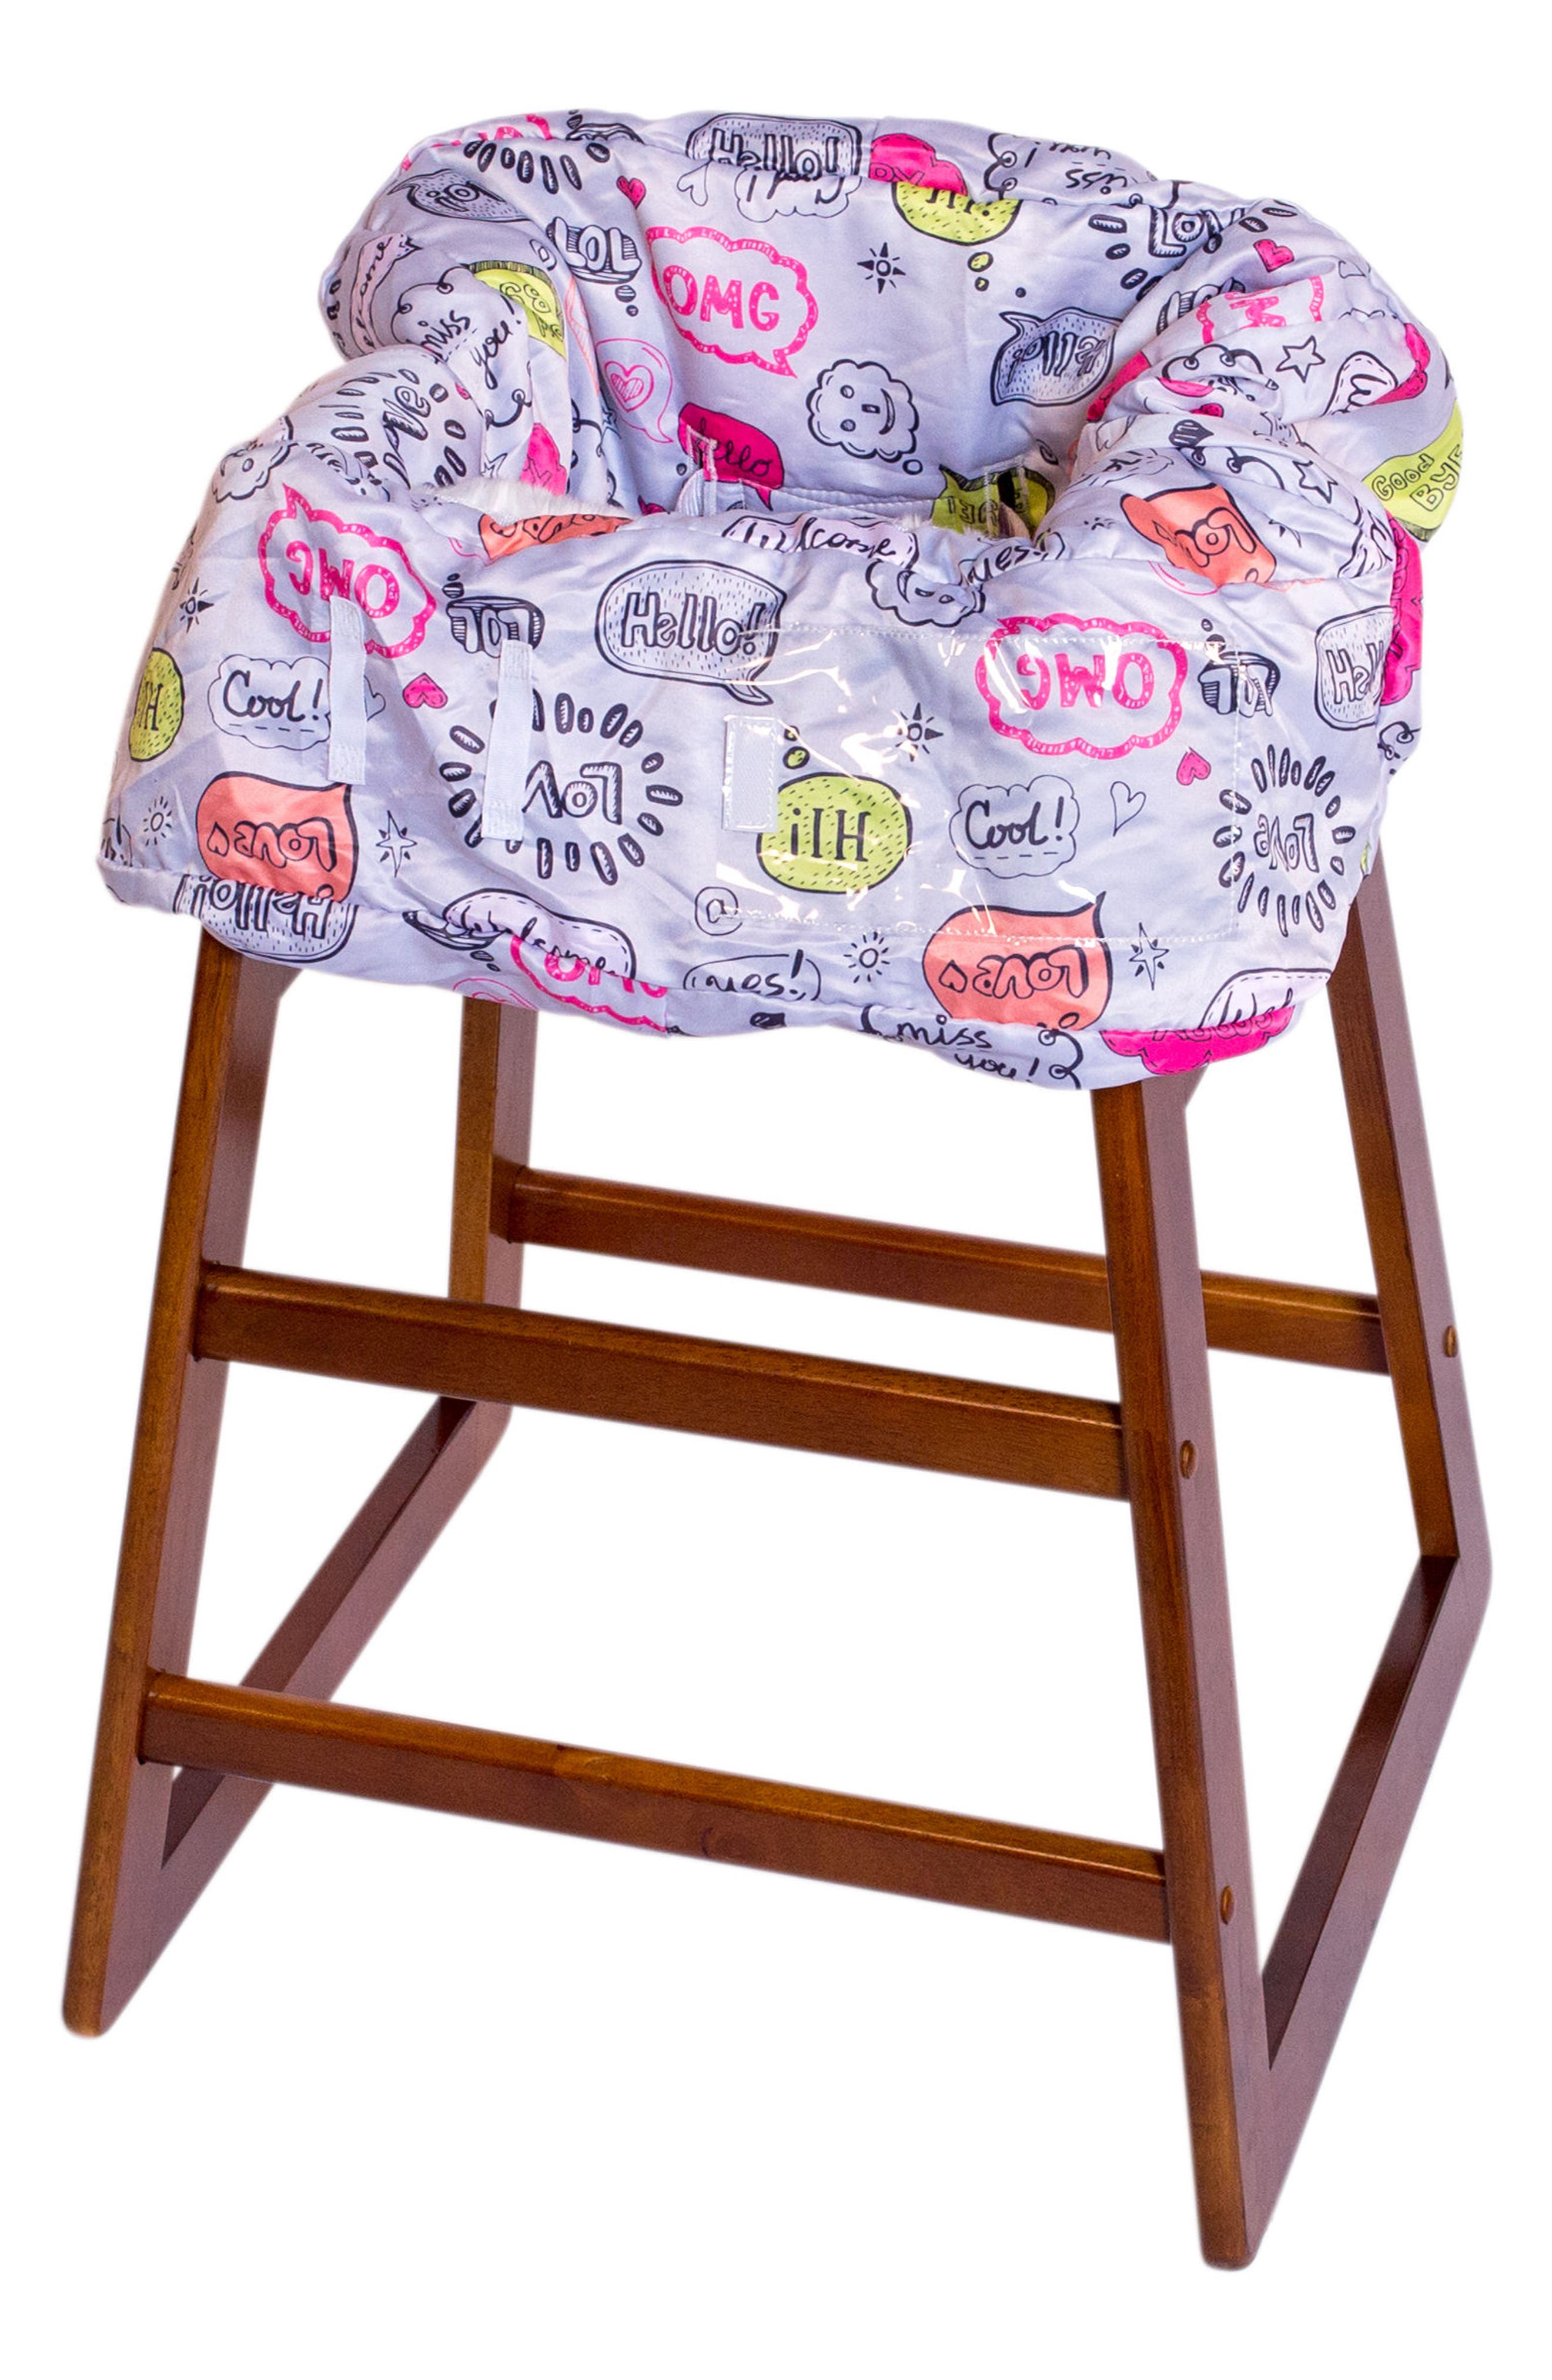 Highchair/Shopping Cart Cover,                             Alternate thumbnail 3, color,                             020